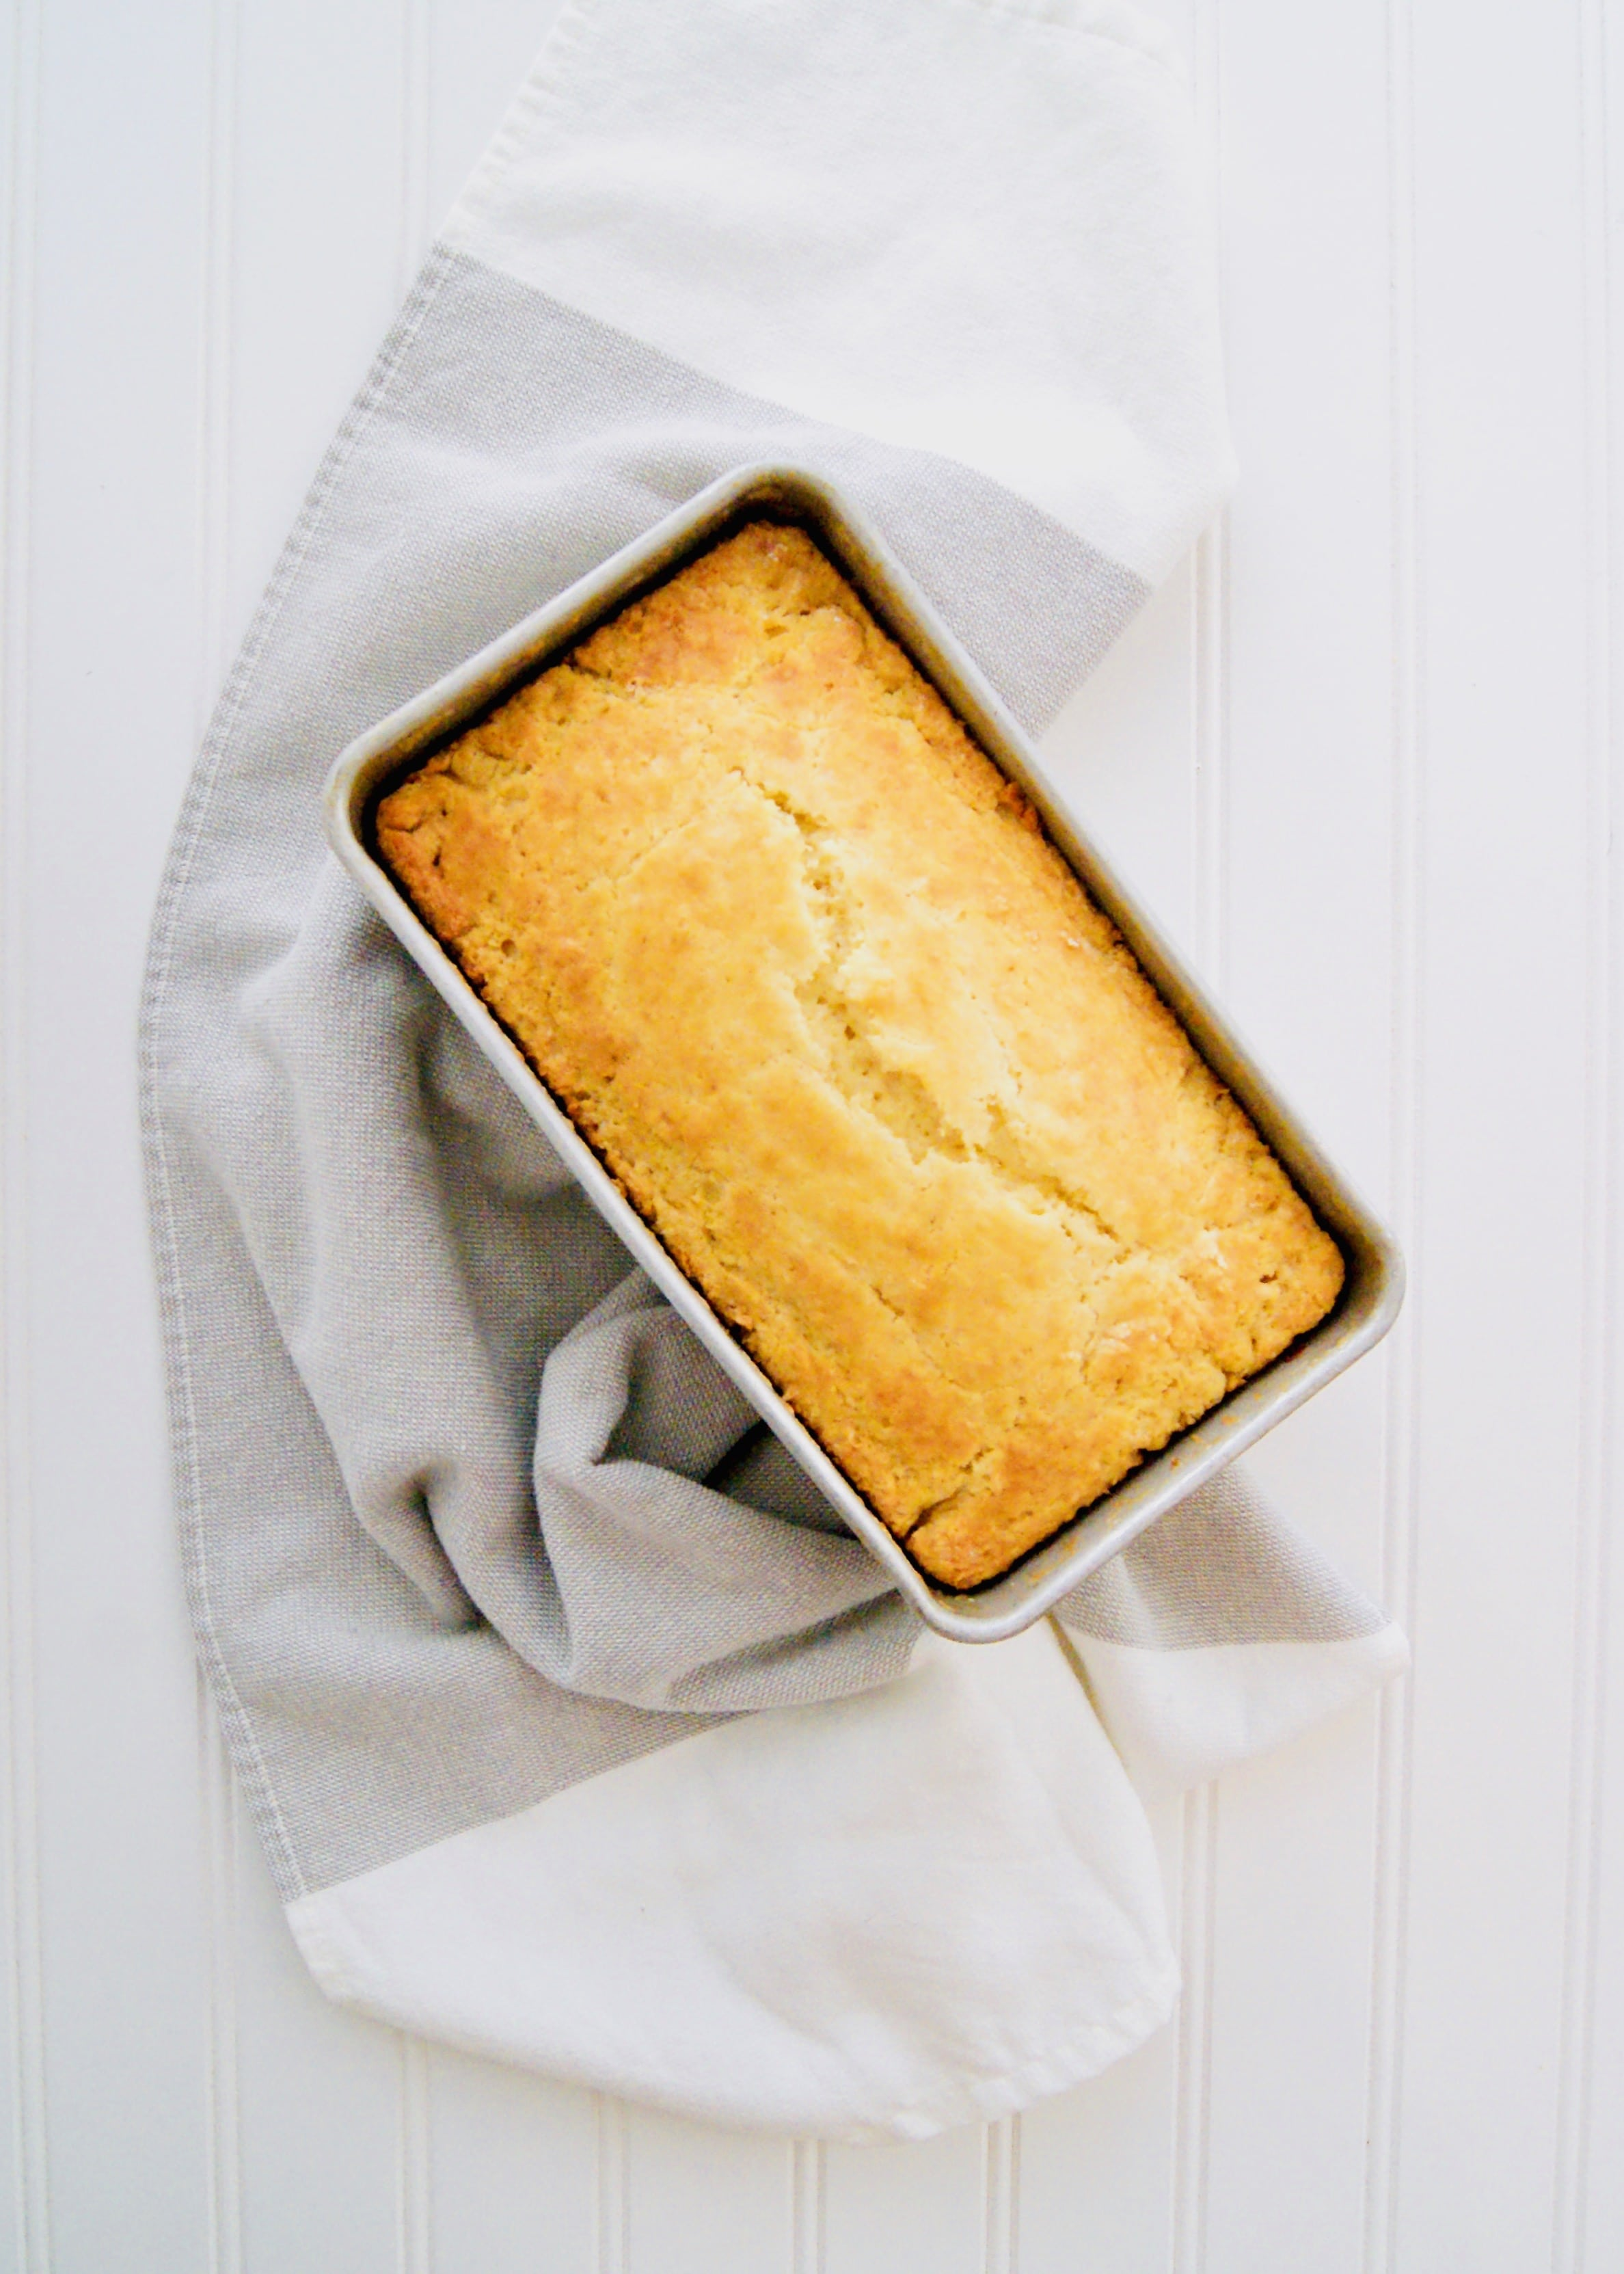 Buttermilk Quick Bread is a magical thing. No yeast, No rising, and No kneading. Delicious as is, or make one of the 5 recipe customizations. Sweet or savory, your pick! Recipe at KathleensCravings.com #quickbread #basicquickbread #buttermilkbread #buttermilkquickbread #sweetquickbread #savoryquickbread #buttermilkrecipes